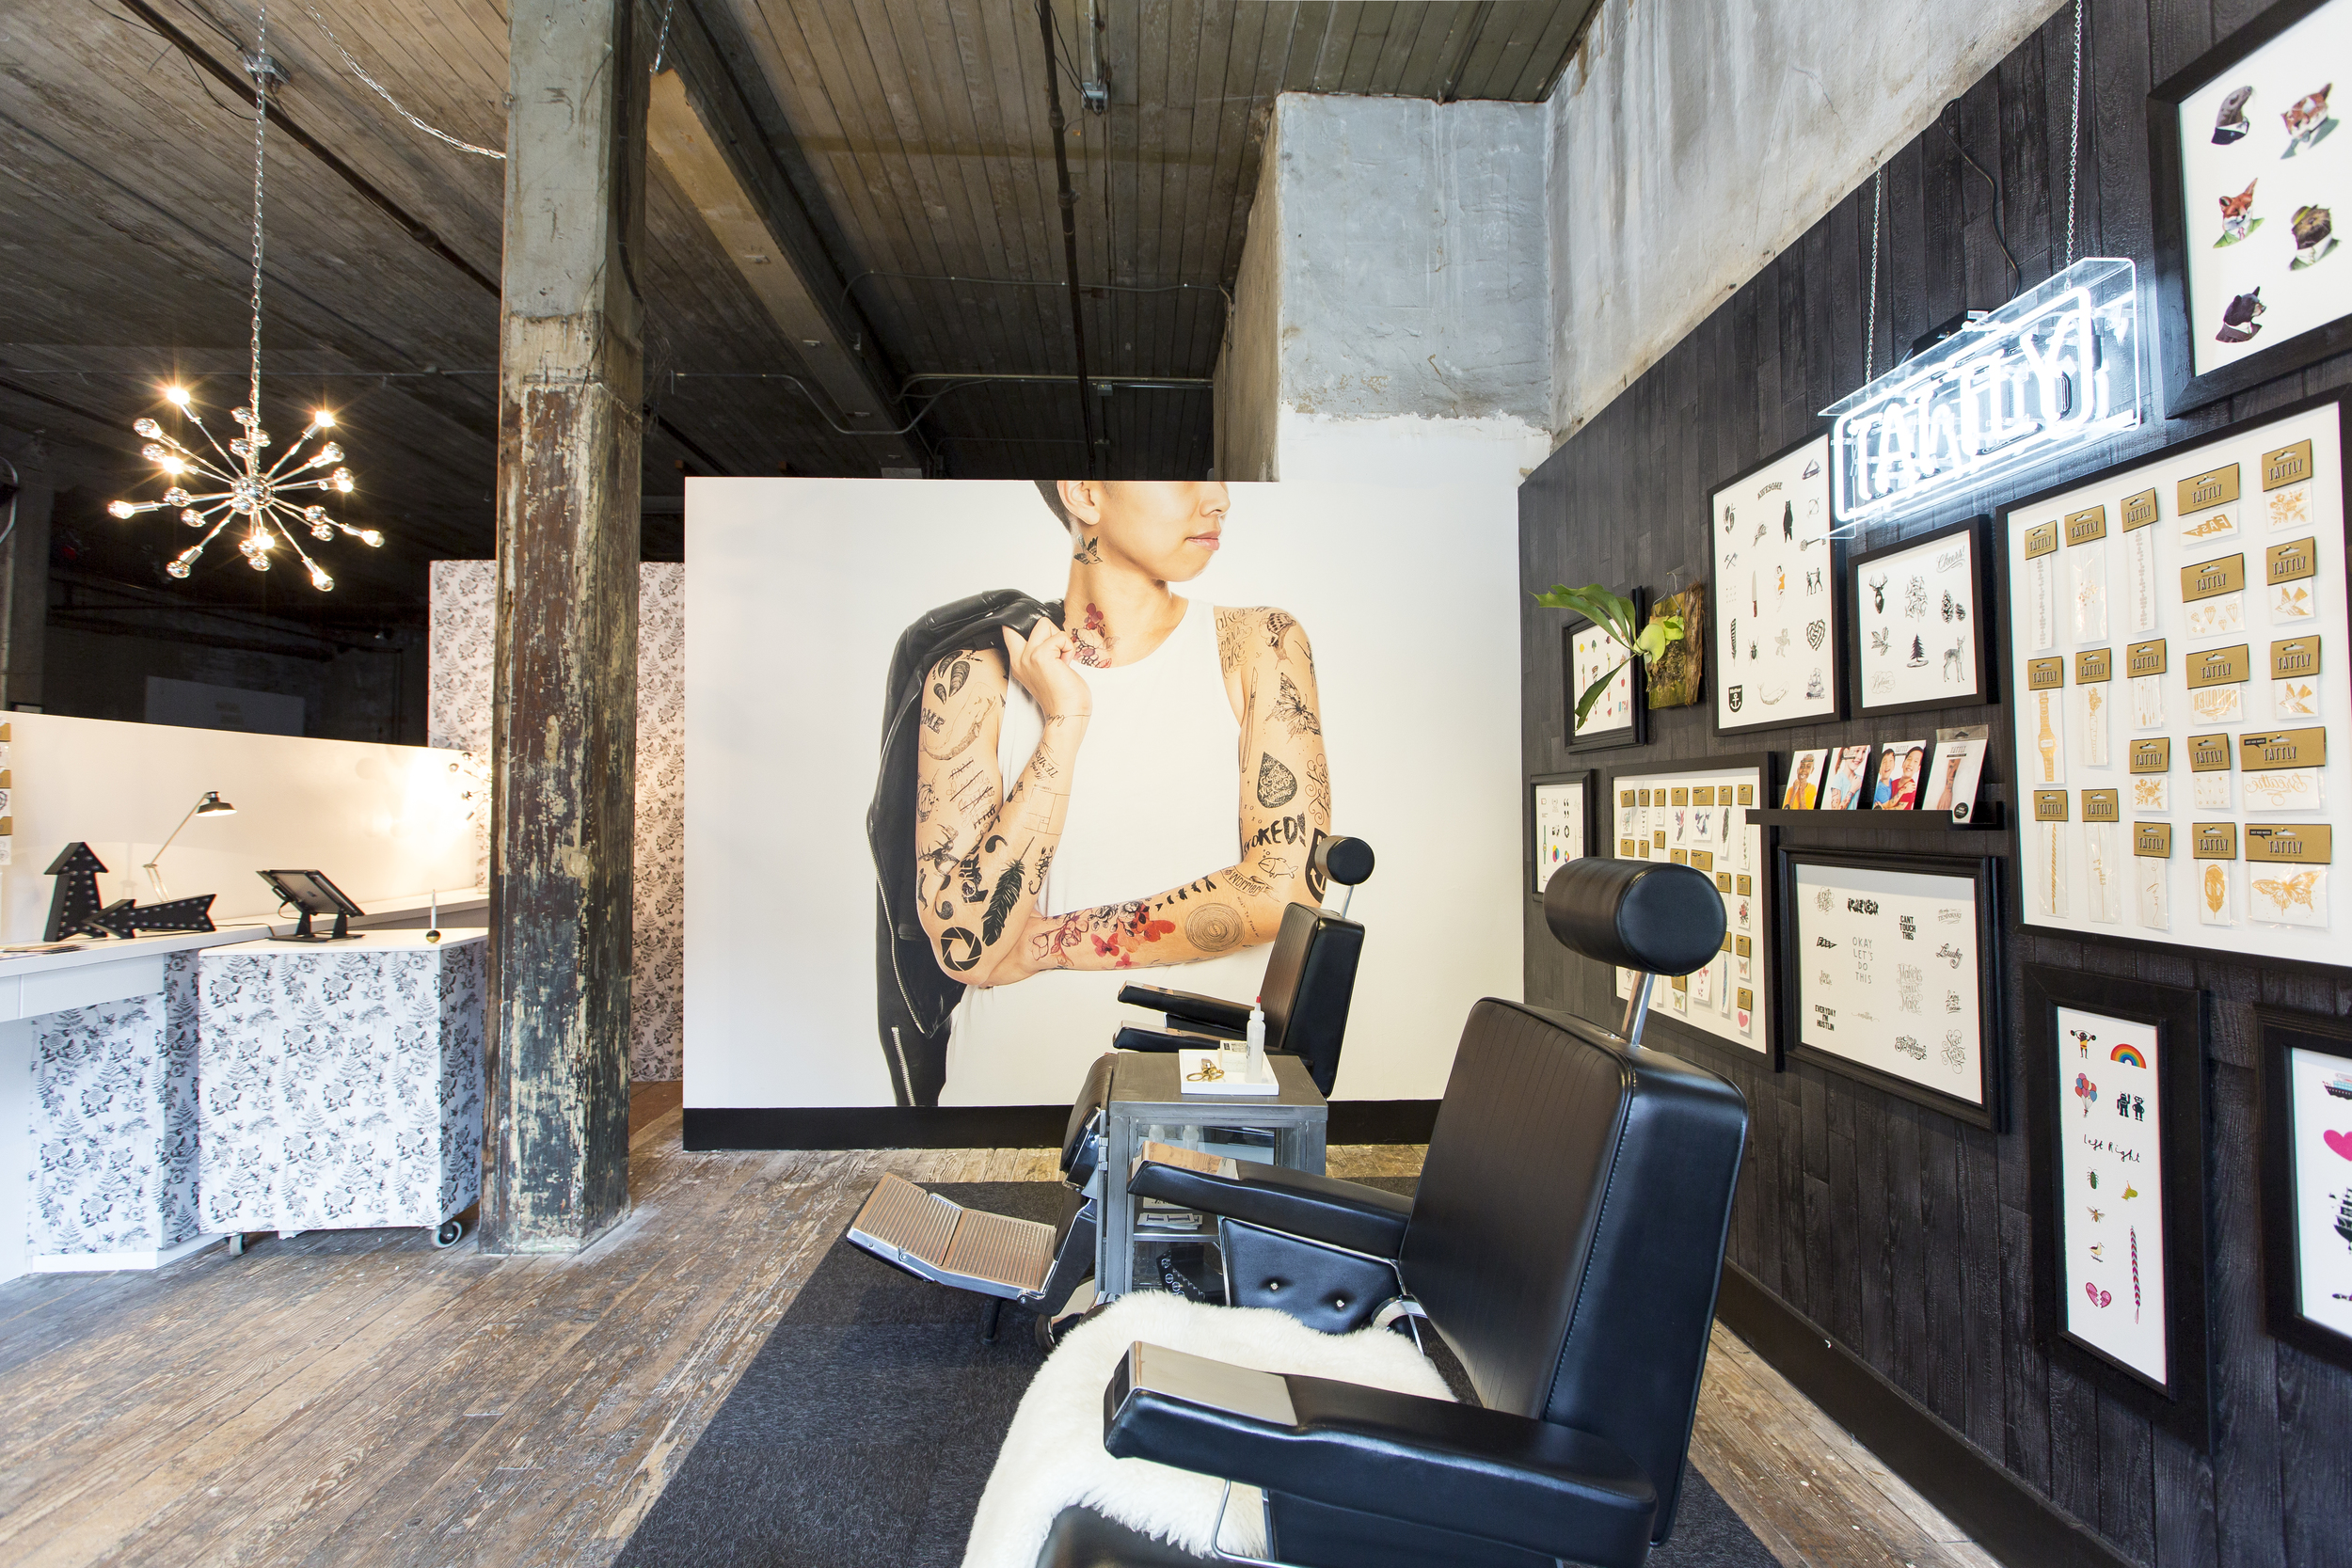 A Full Service Tattly Temporary Tattoo Parlor Opens In Brooklyn New York